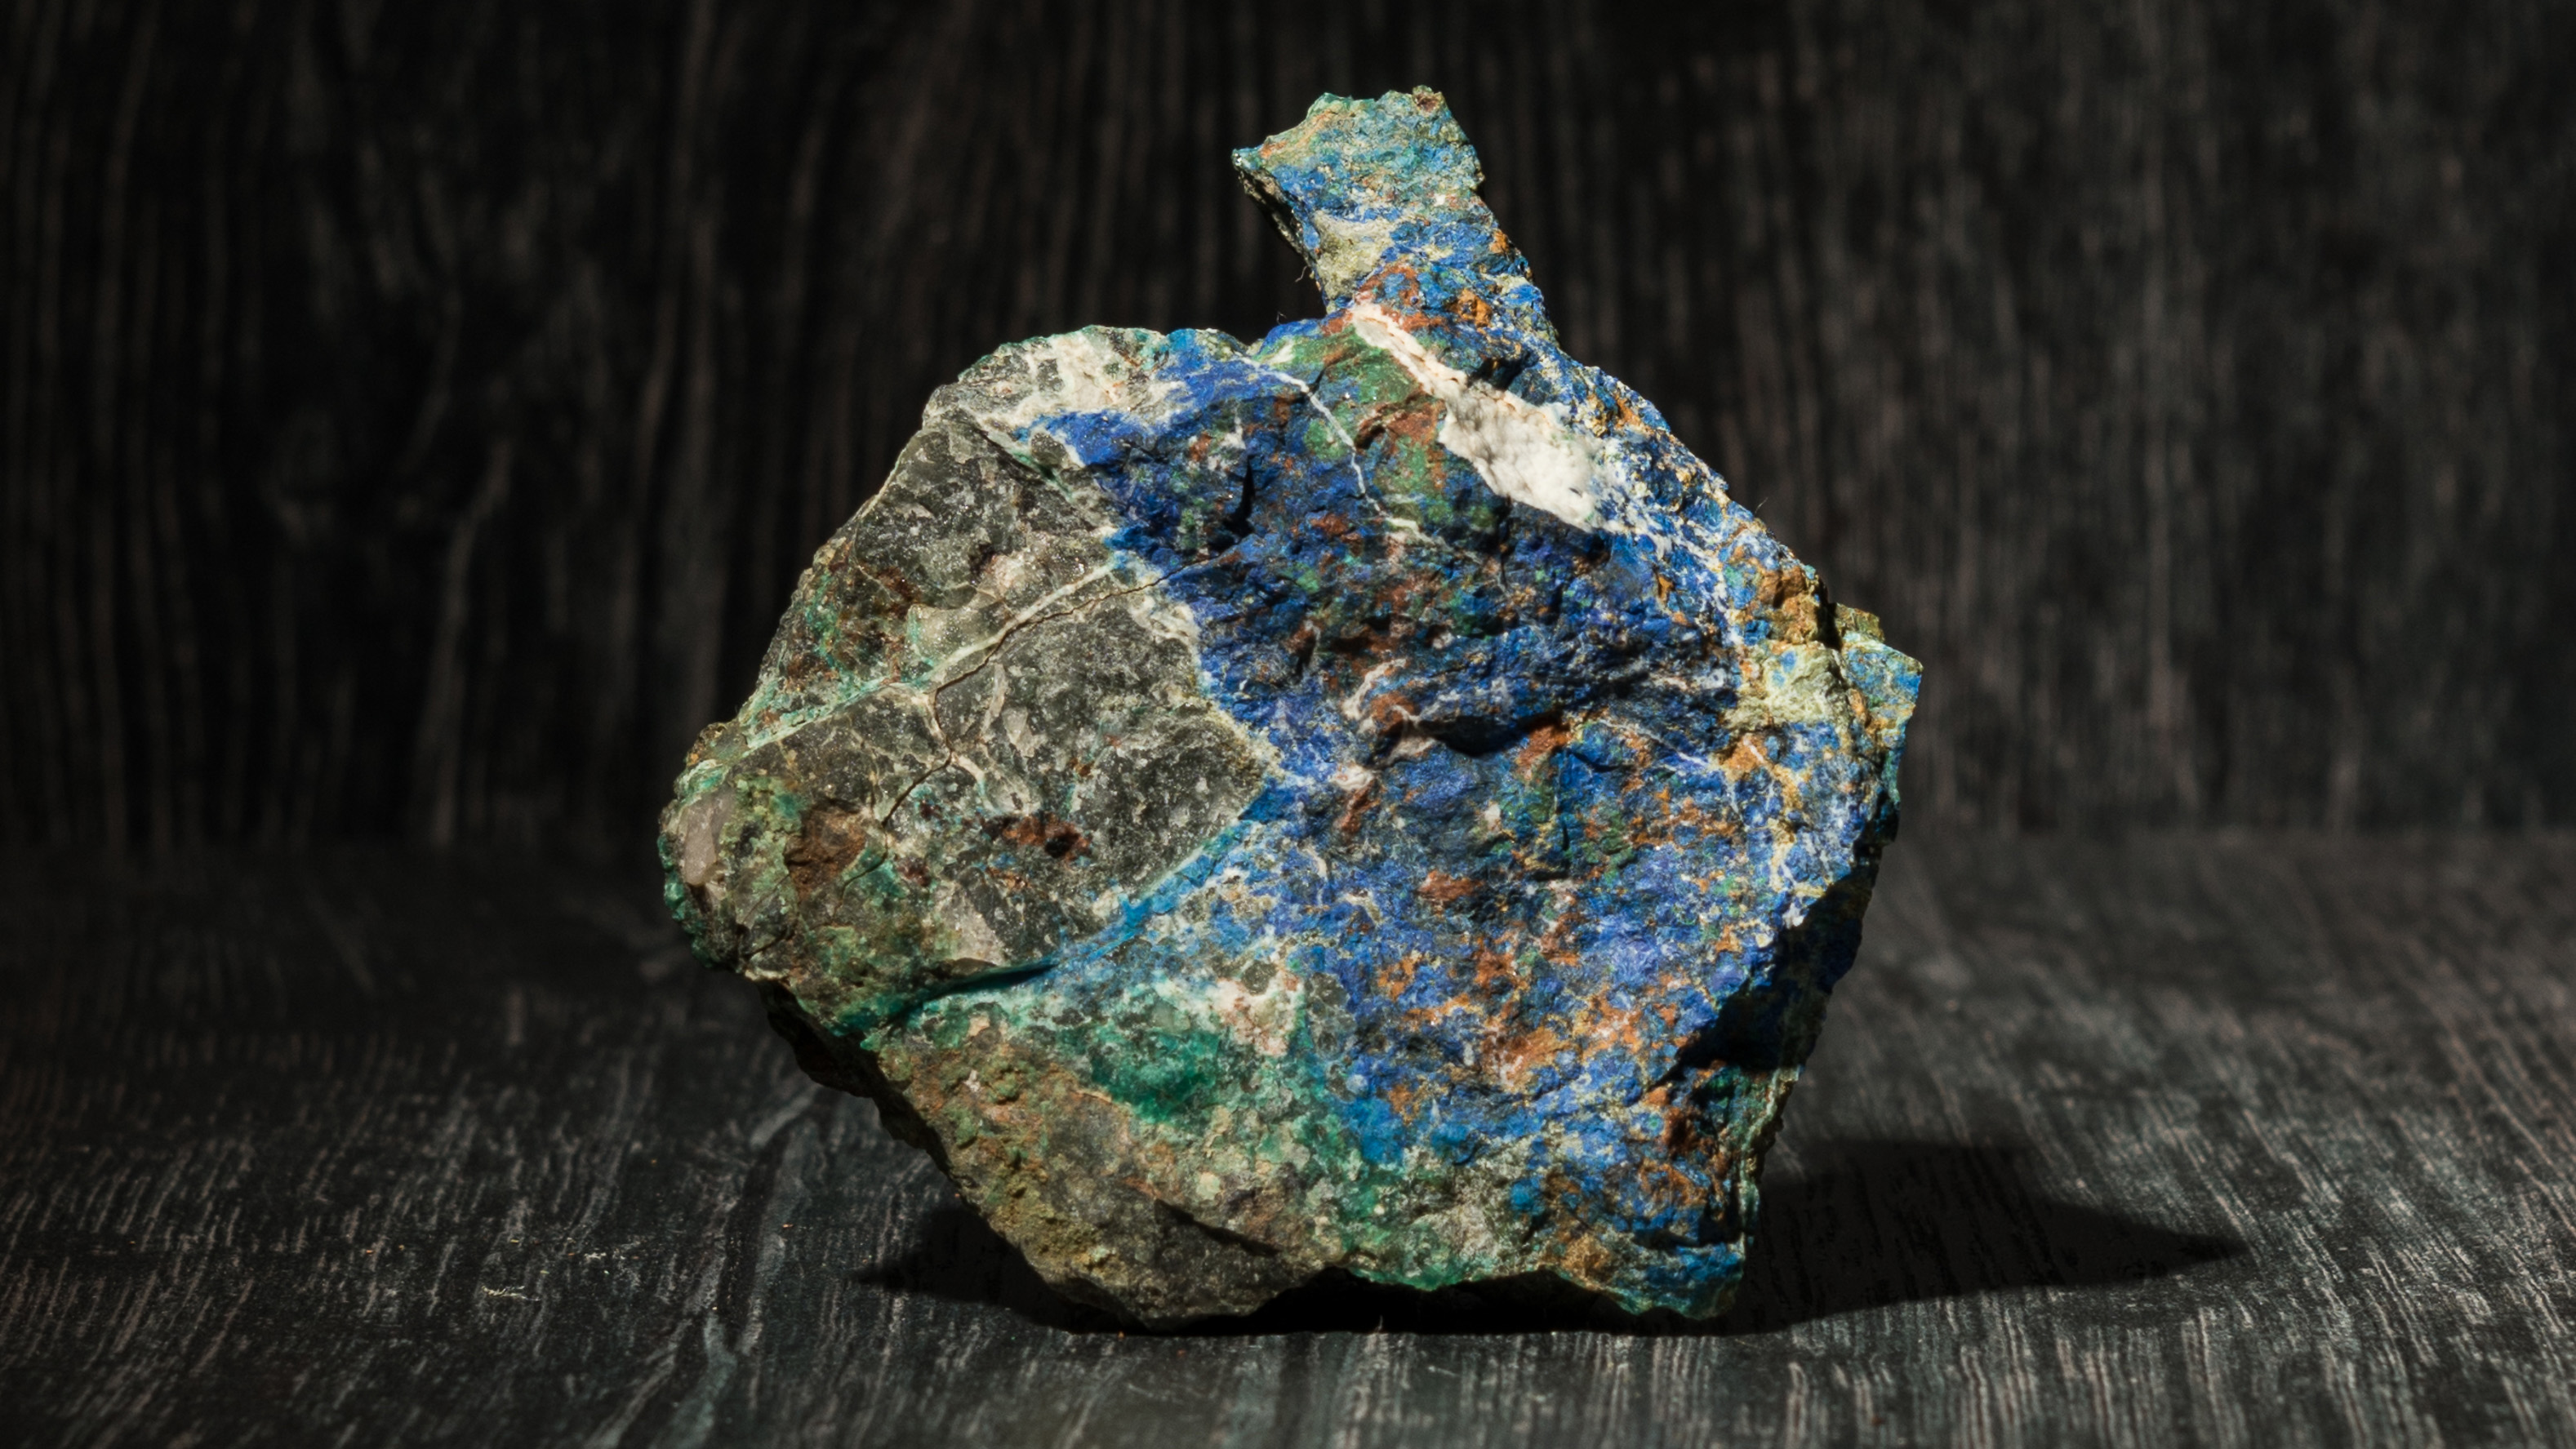 Archer rock sample containing copper from Yanlowinna.